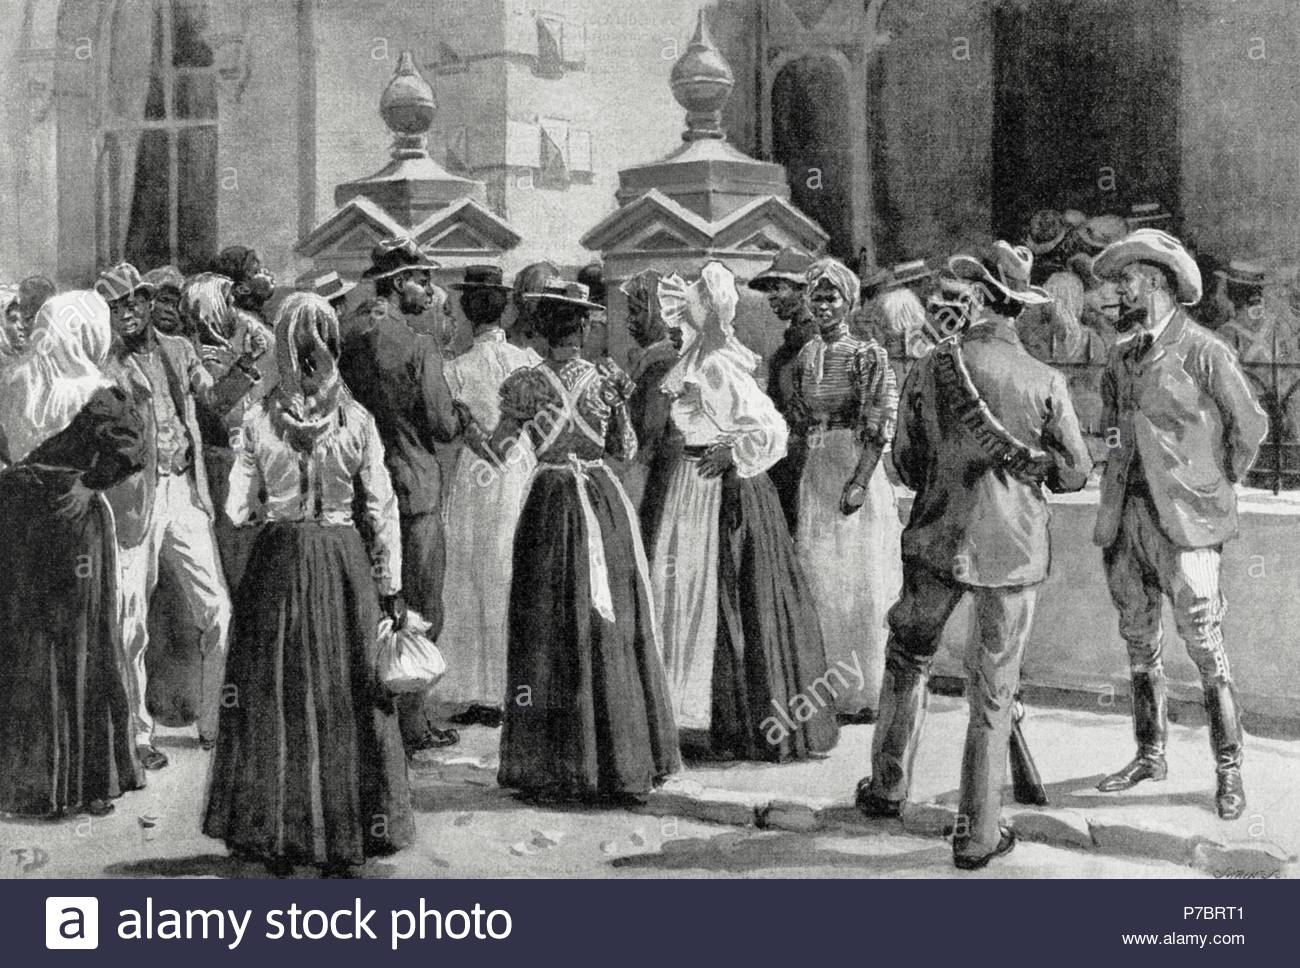 Second Anglo-Boer War (1899-1902) between the United Kingdom and Ireland and the South African Republic and the Orange Free State. Exodus of Johannesburg. Native  people leaving from the city. Engraving. 'La Ilustracion Artistica', 1900. - Stock Image